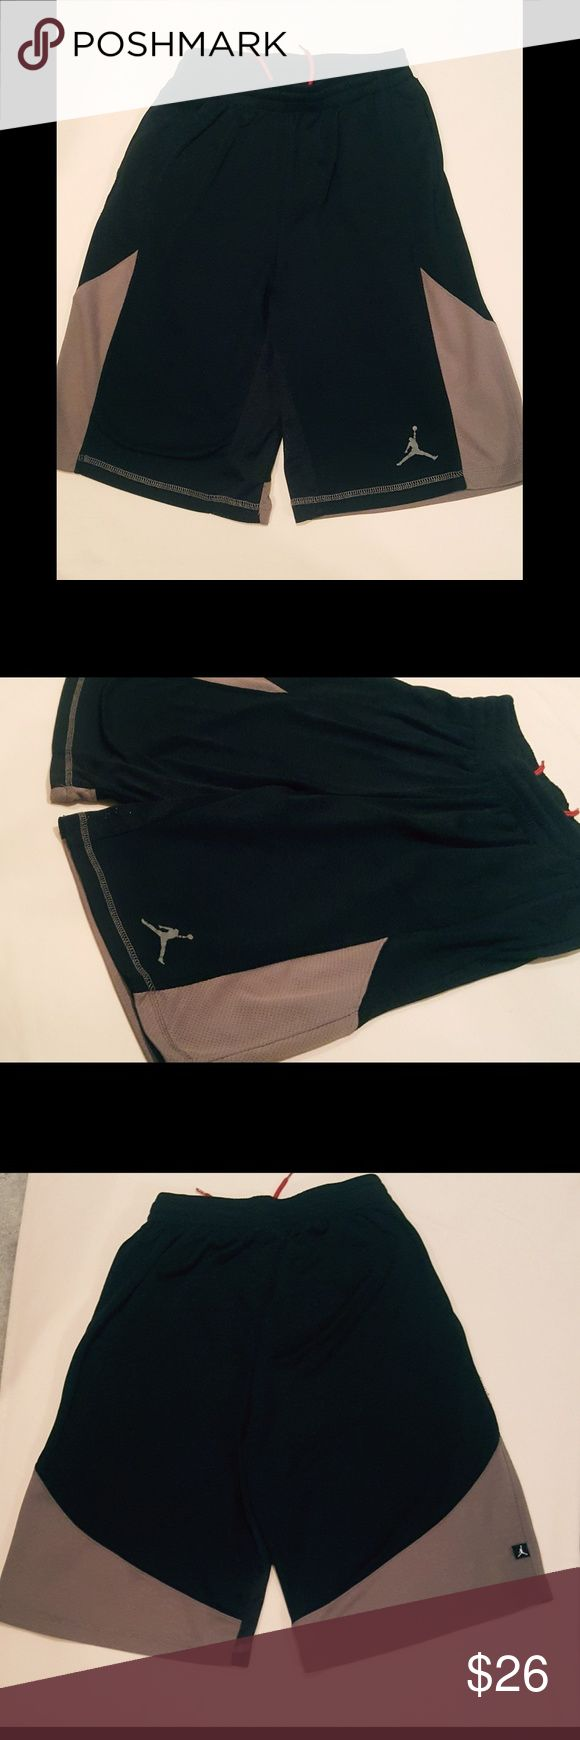 NWOT Jordan basketball shorts NWOT Jordans dri-fit basketball shorts. Juniors size xxl, fit as a woman's small. Shorts are black and grey with red drawstrings. Jordan Shorts